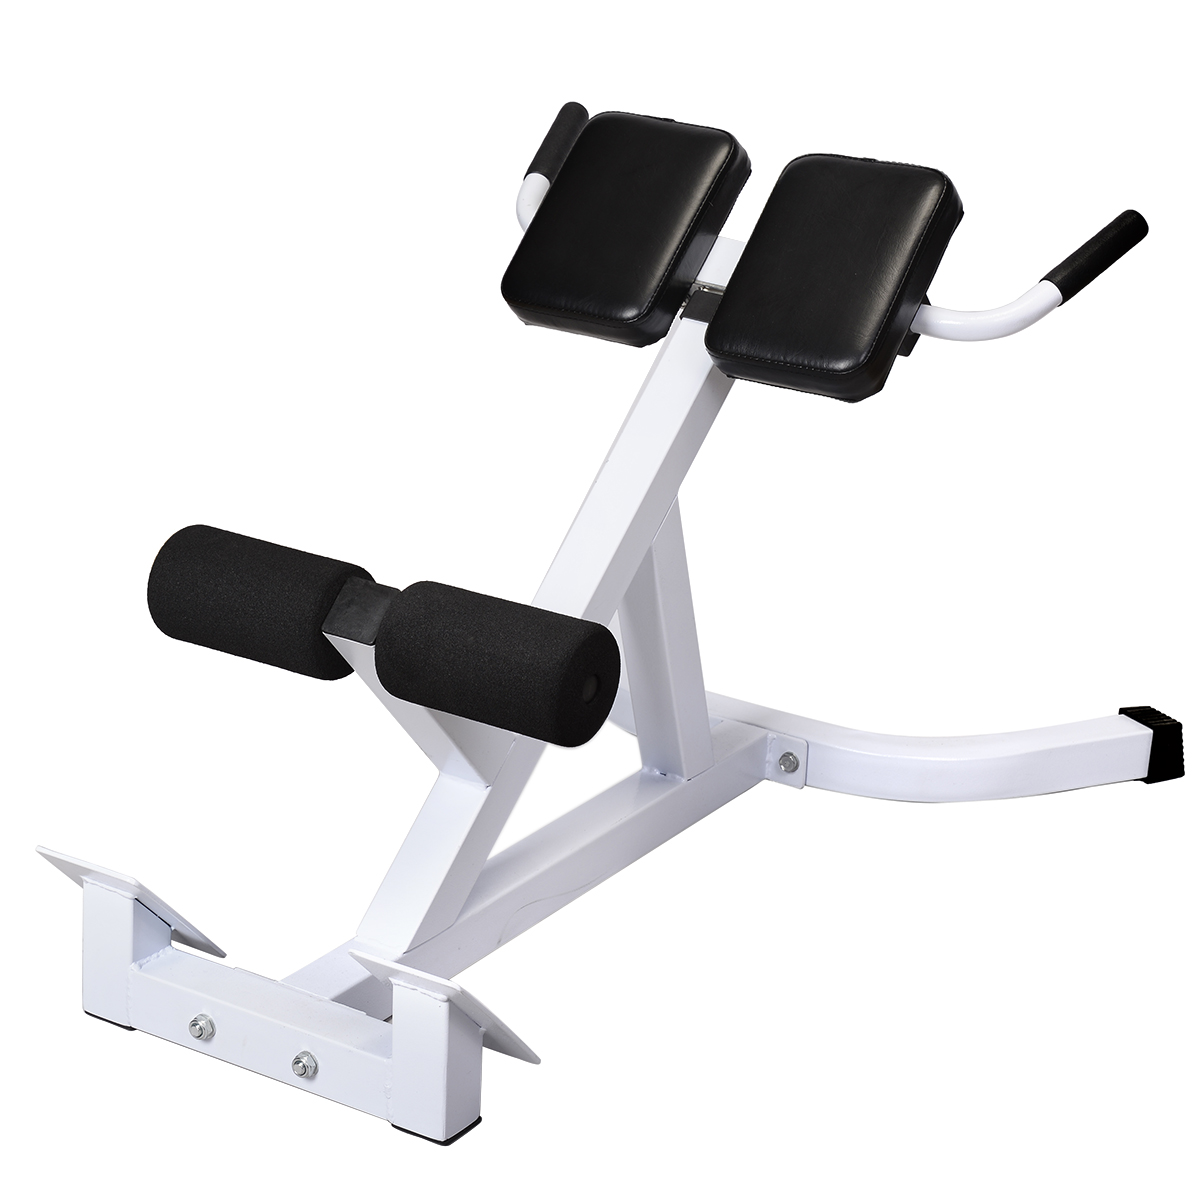 chair gym commercial walmart rocking chairs goplus extension hyperextension back exercise ab bench abdominal roman com